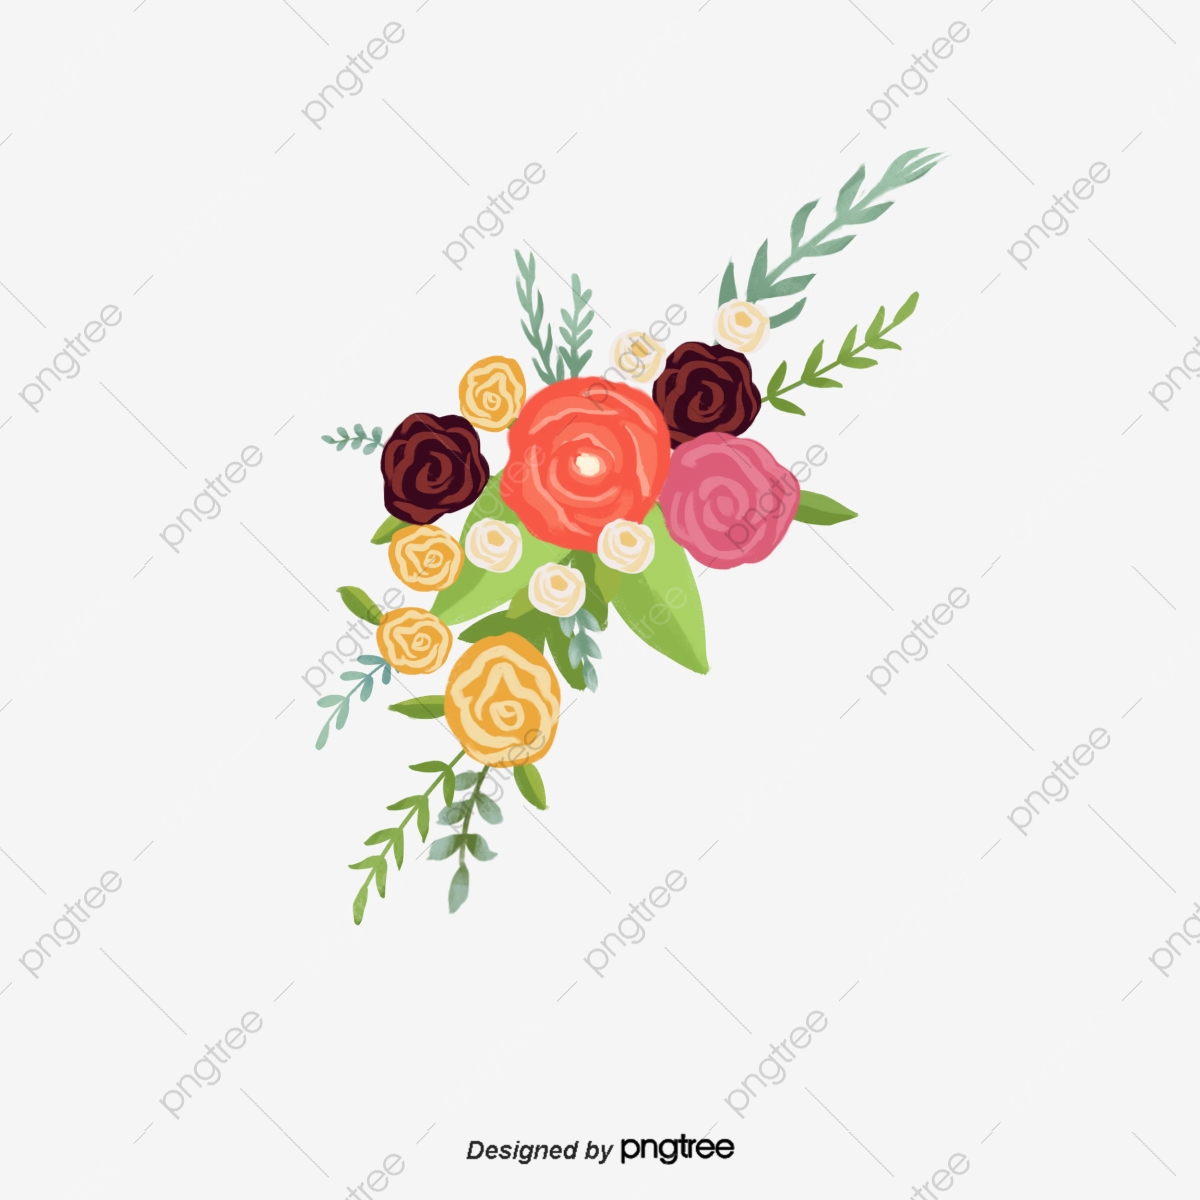 Red Burgundy Flower Decorative Illustration Border Burgundy Flower